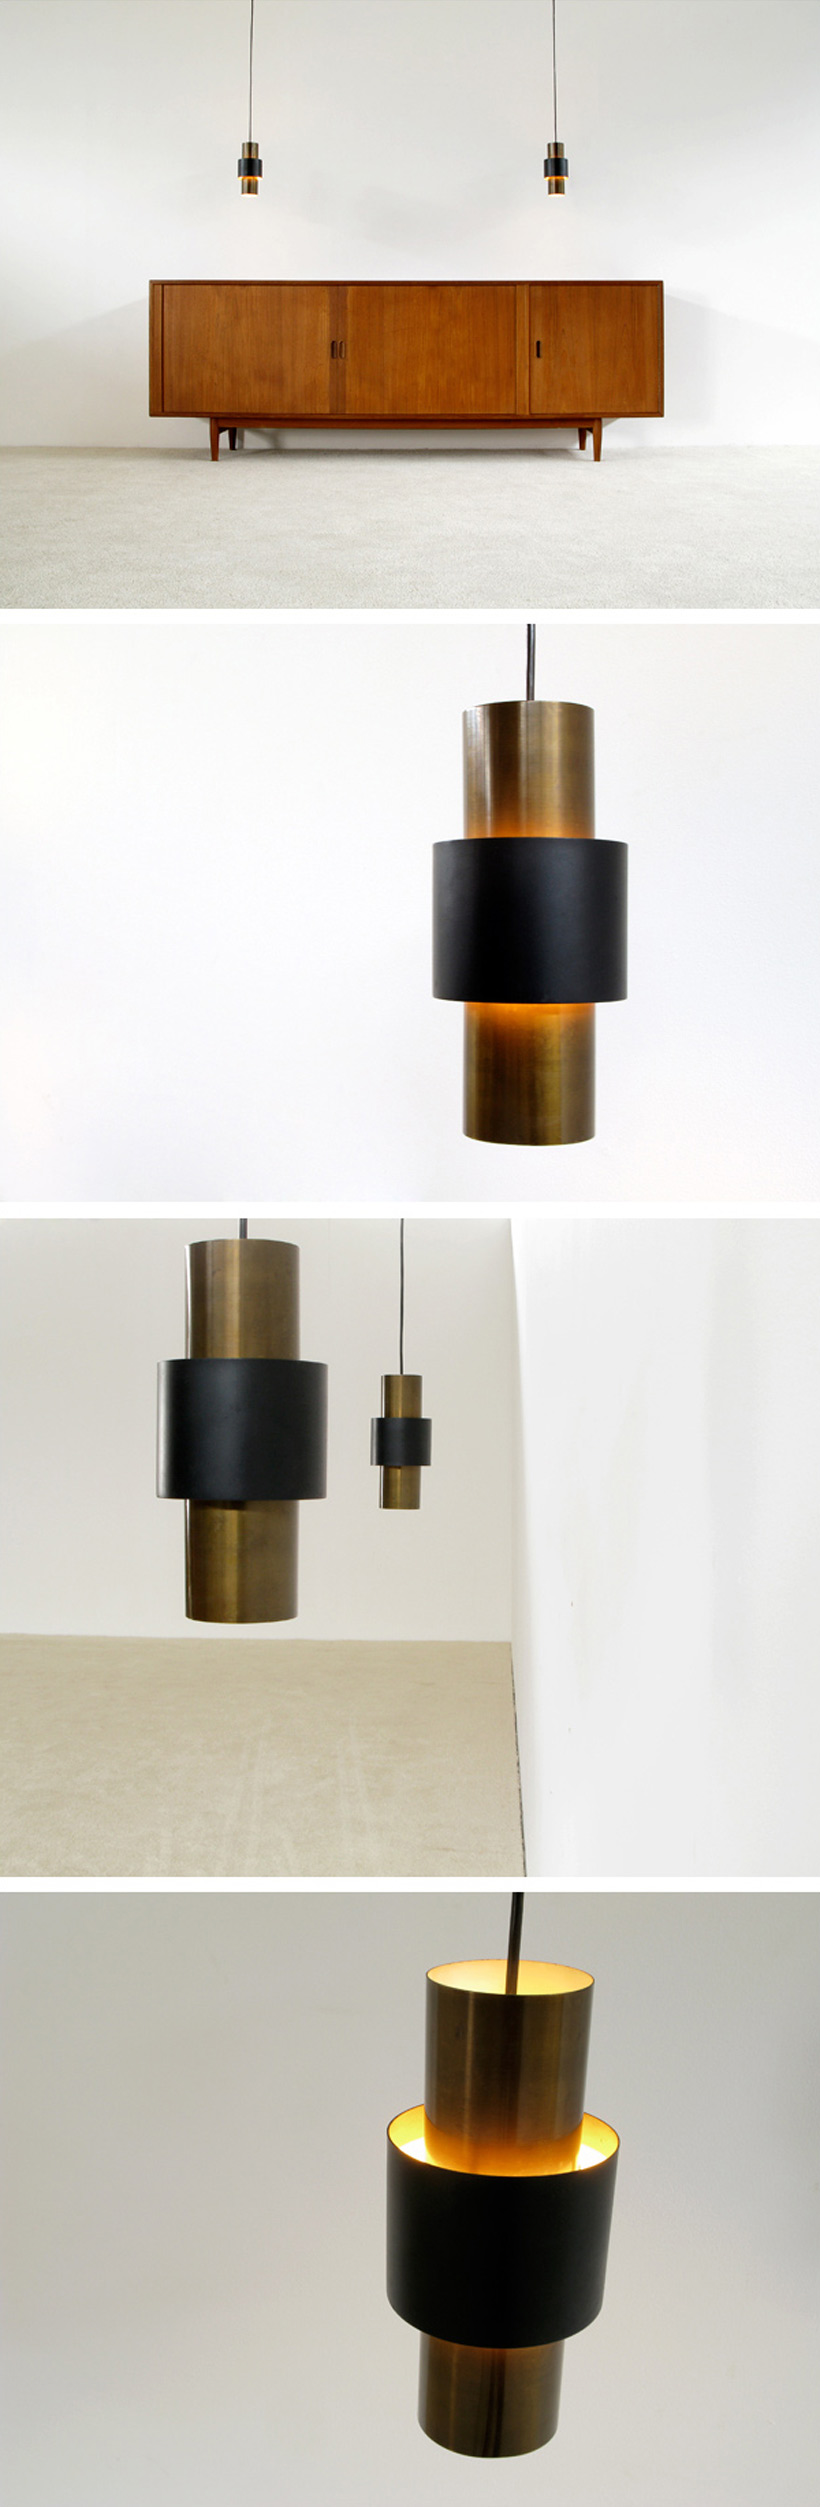 Pair of Tunika pendant ceiling lamps Jo Hammerborg Fog & Mørup Large